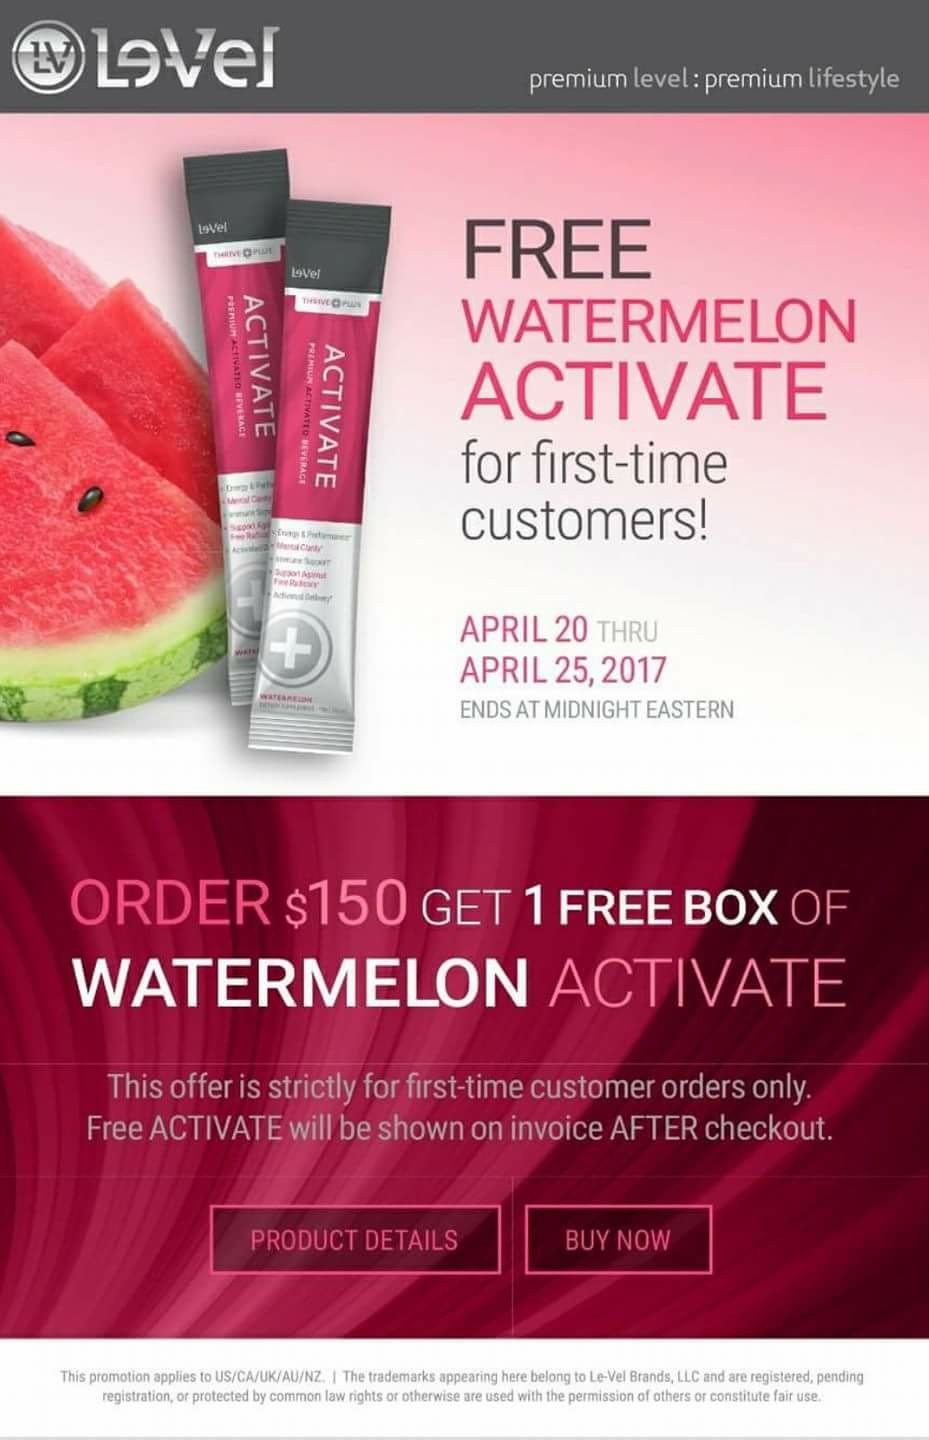 FREE watermelon activate for first time customers!!!! Perfect time to start your Thrive Experience!!!!!! #activate 🍉 #watermelon🍉 #watermelonactivate 🍉 #naturalenergydrink🍉 #energy 🍉  THRIVEenMomma.le-vel.com